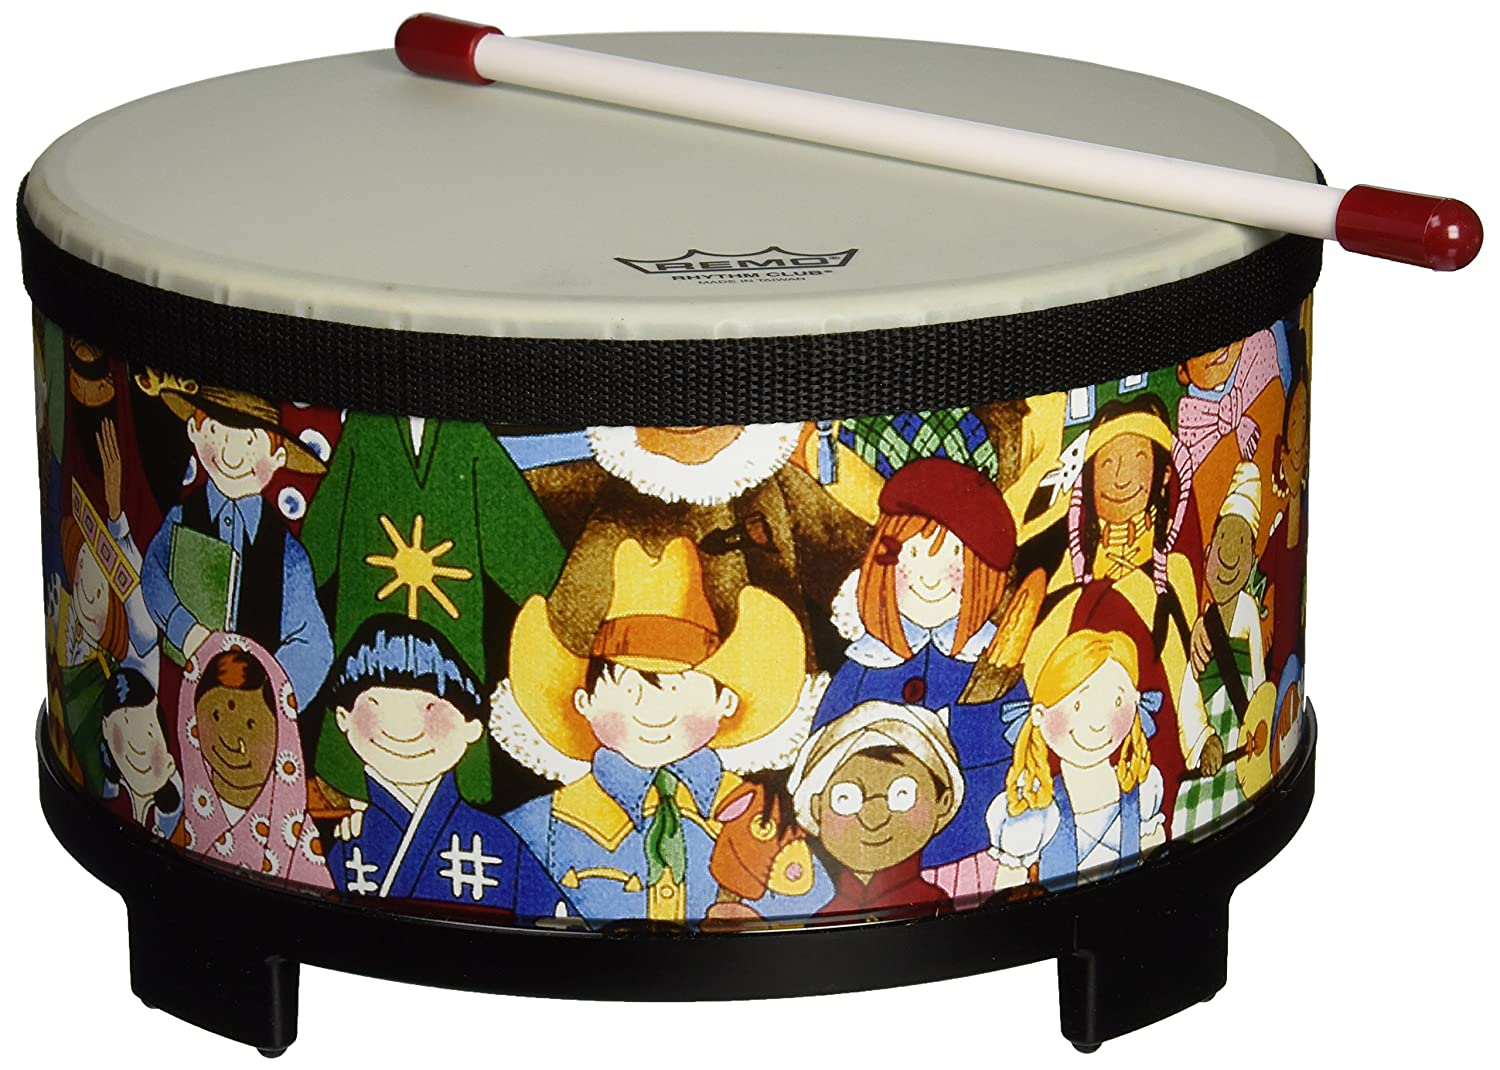 Drum Toy For 1 Year Olds : Awesome musical toys for year olds in